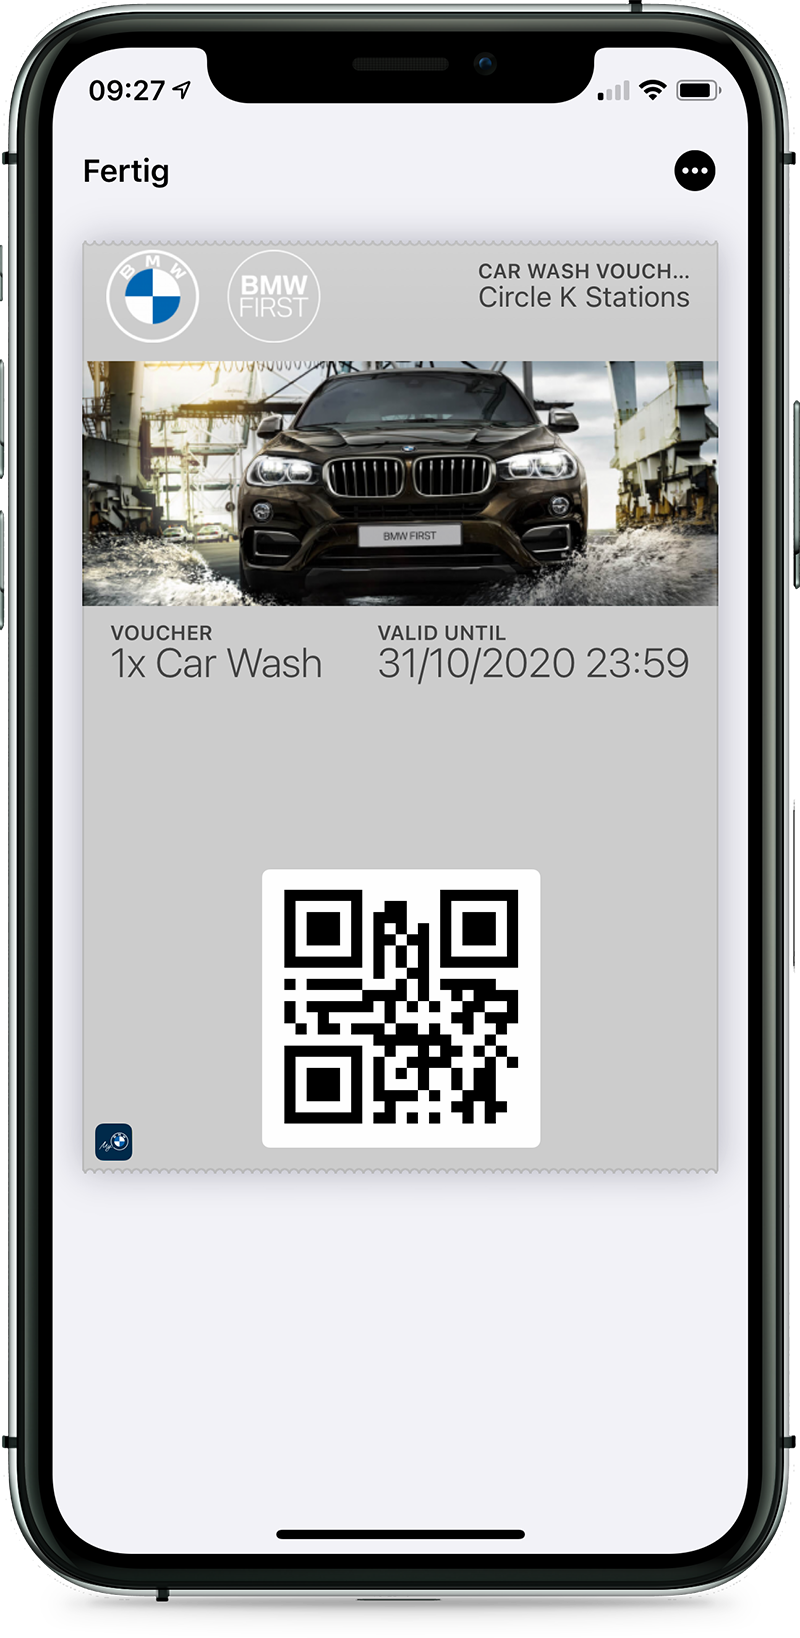 BMW First - Car wash voucher